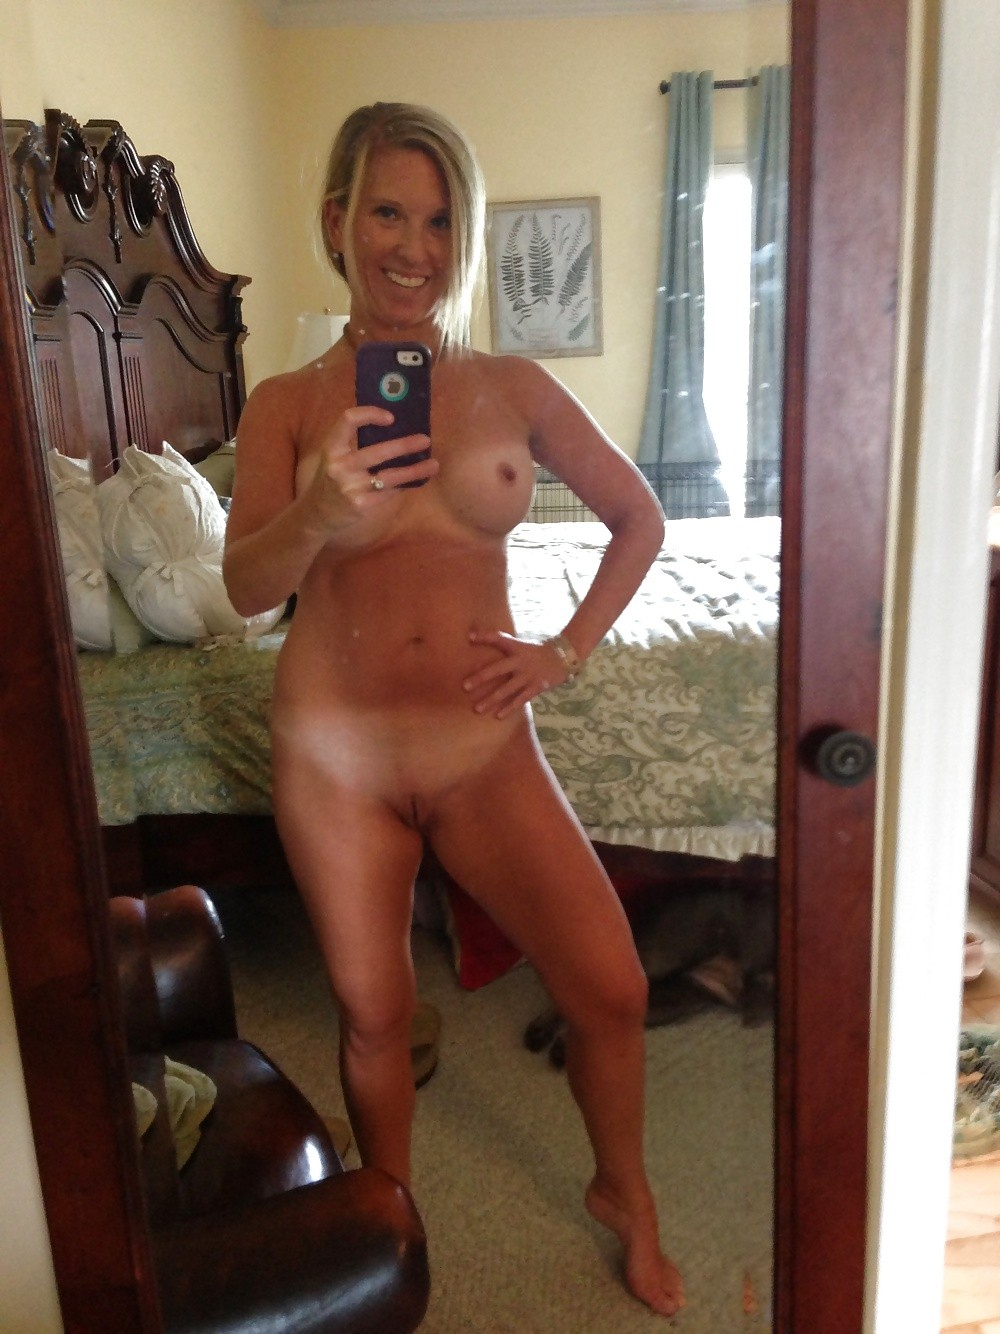 amature-nude-moms-self-pics-o-ryan-sex